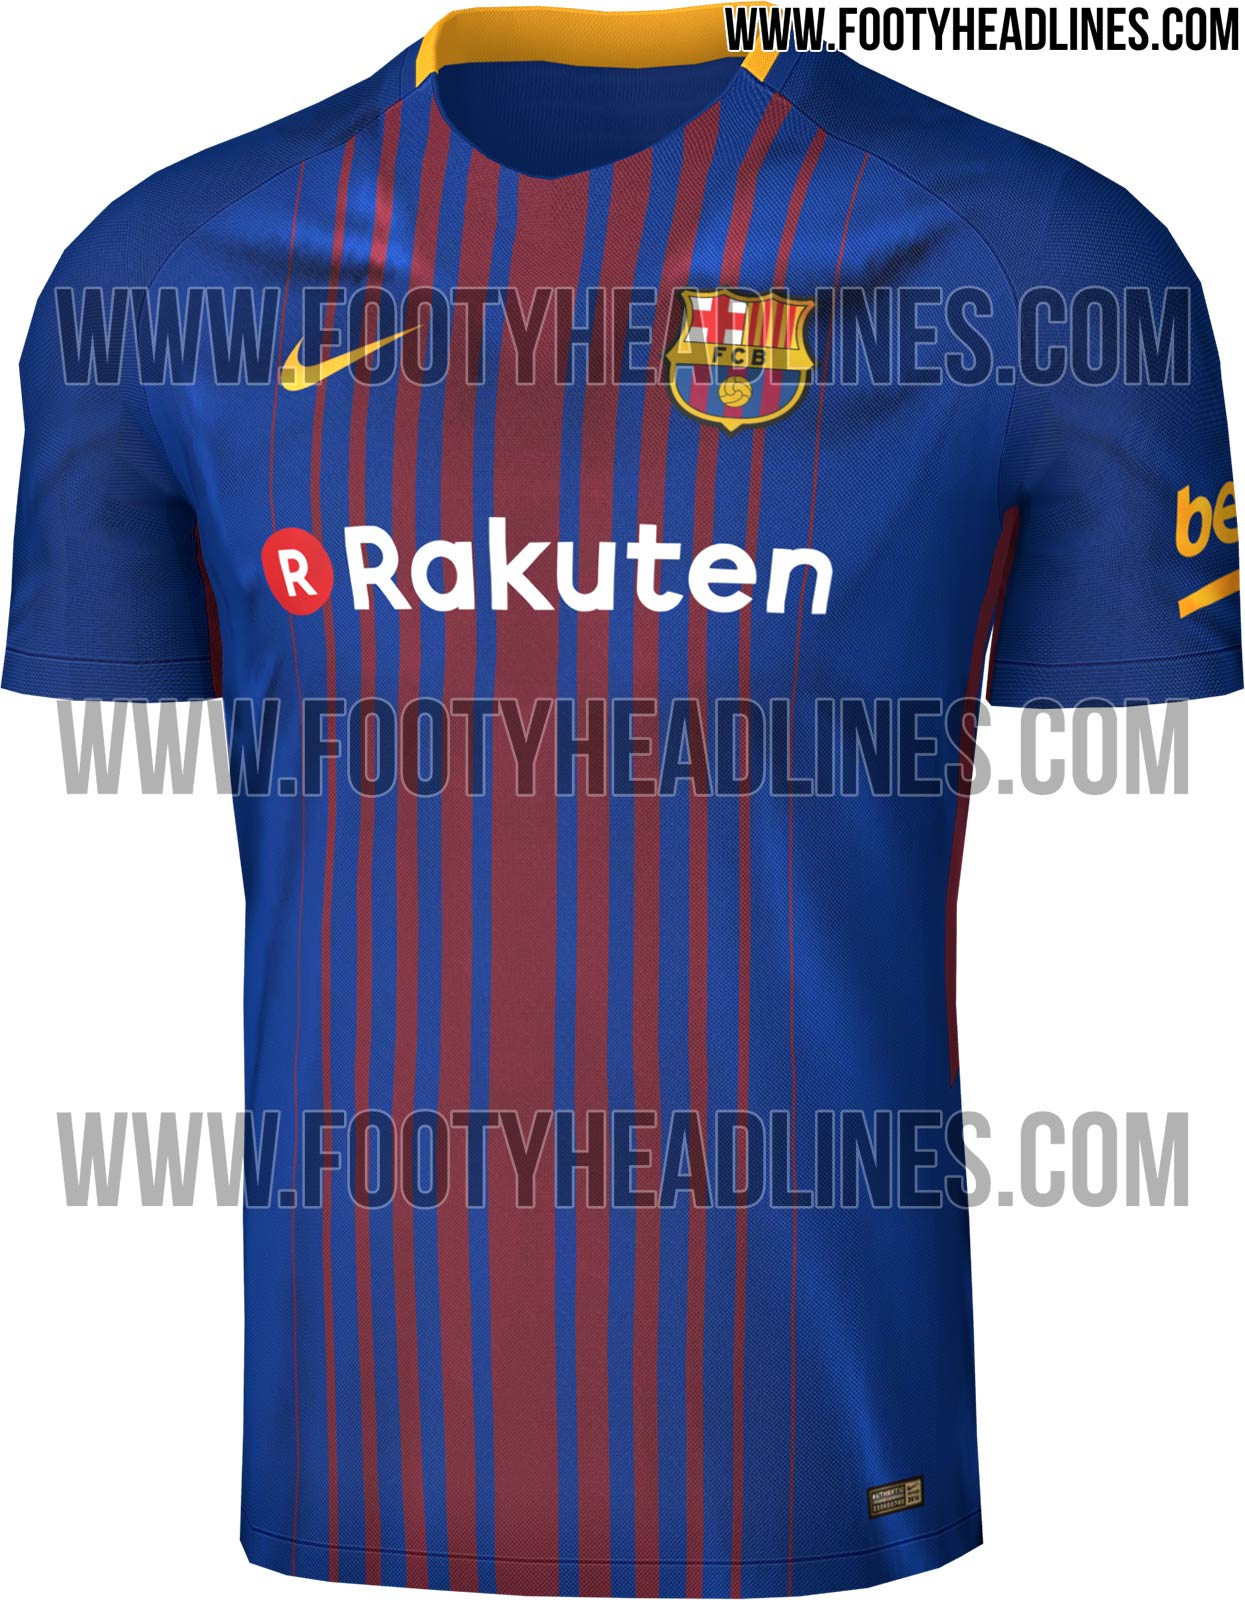 da29aecb19e It was also feature a new sponsor. Japanese online firm Rakuten will pay  the club £47m a year for the next four years